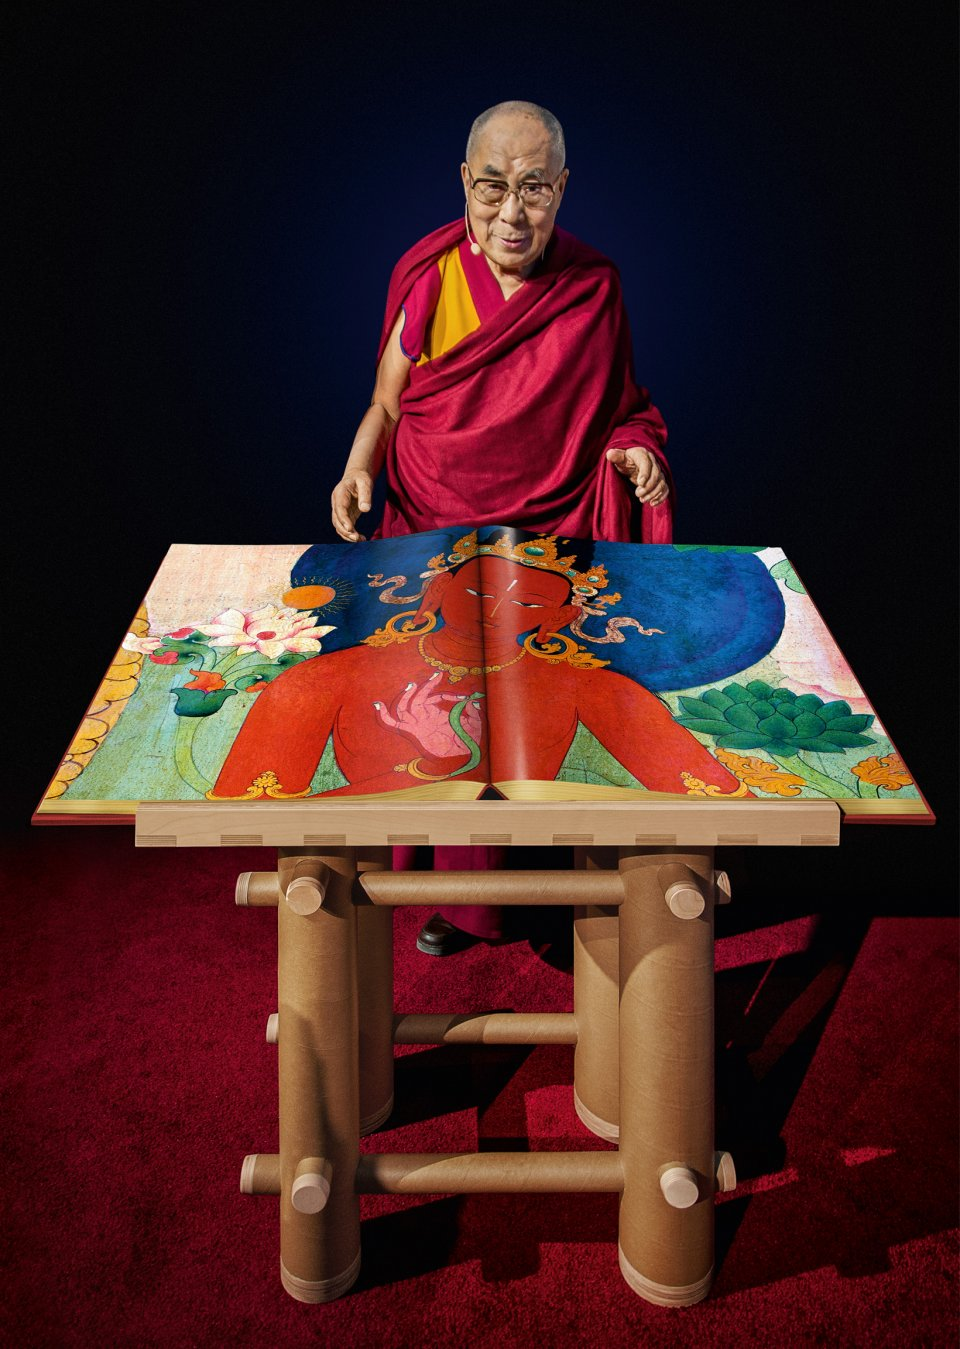 Tenzin Gyatso, the Fourteenth Dalai Lama, with a draft copy of Murals of Tibet, Boston, 2014. Copyright: Photo: Mina Magda / TASCHEN